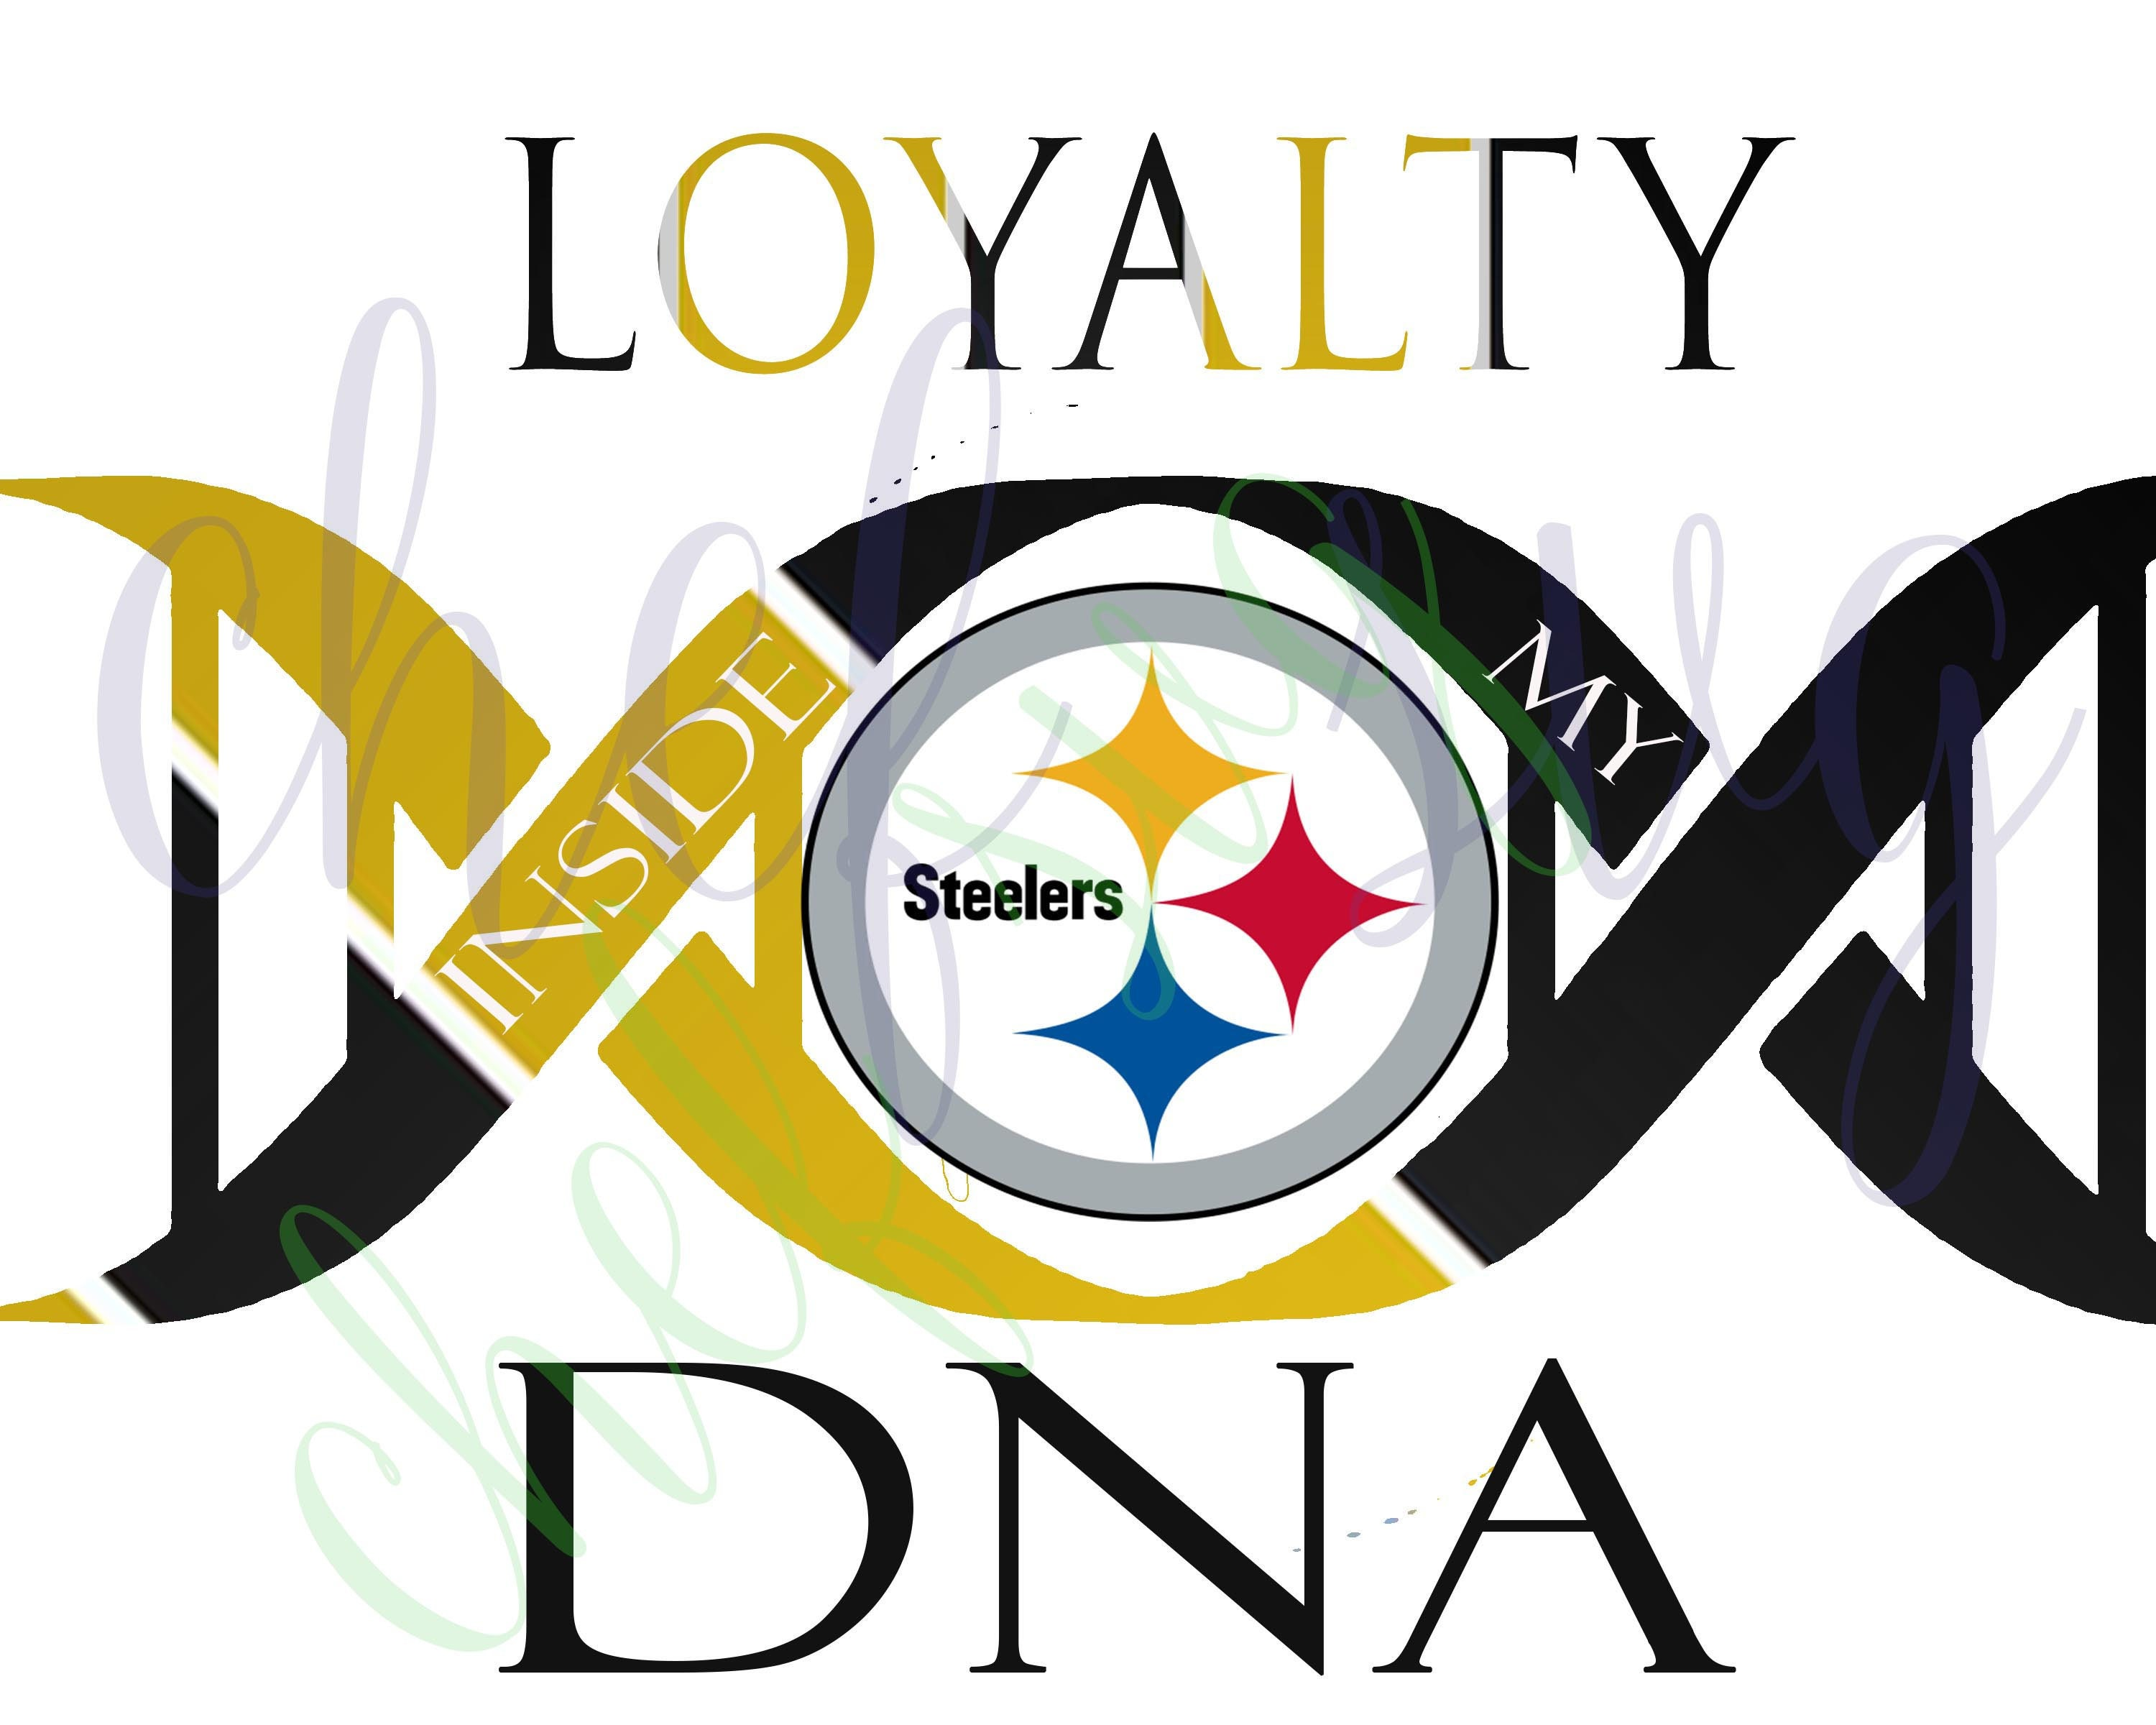 pittsburgh steelers loyalty in my dna svg quote quote rh etsy com steelers logo vector file steelers logo vector download